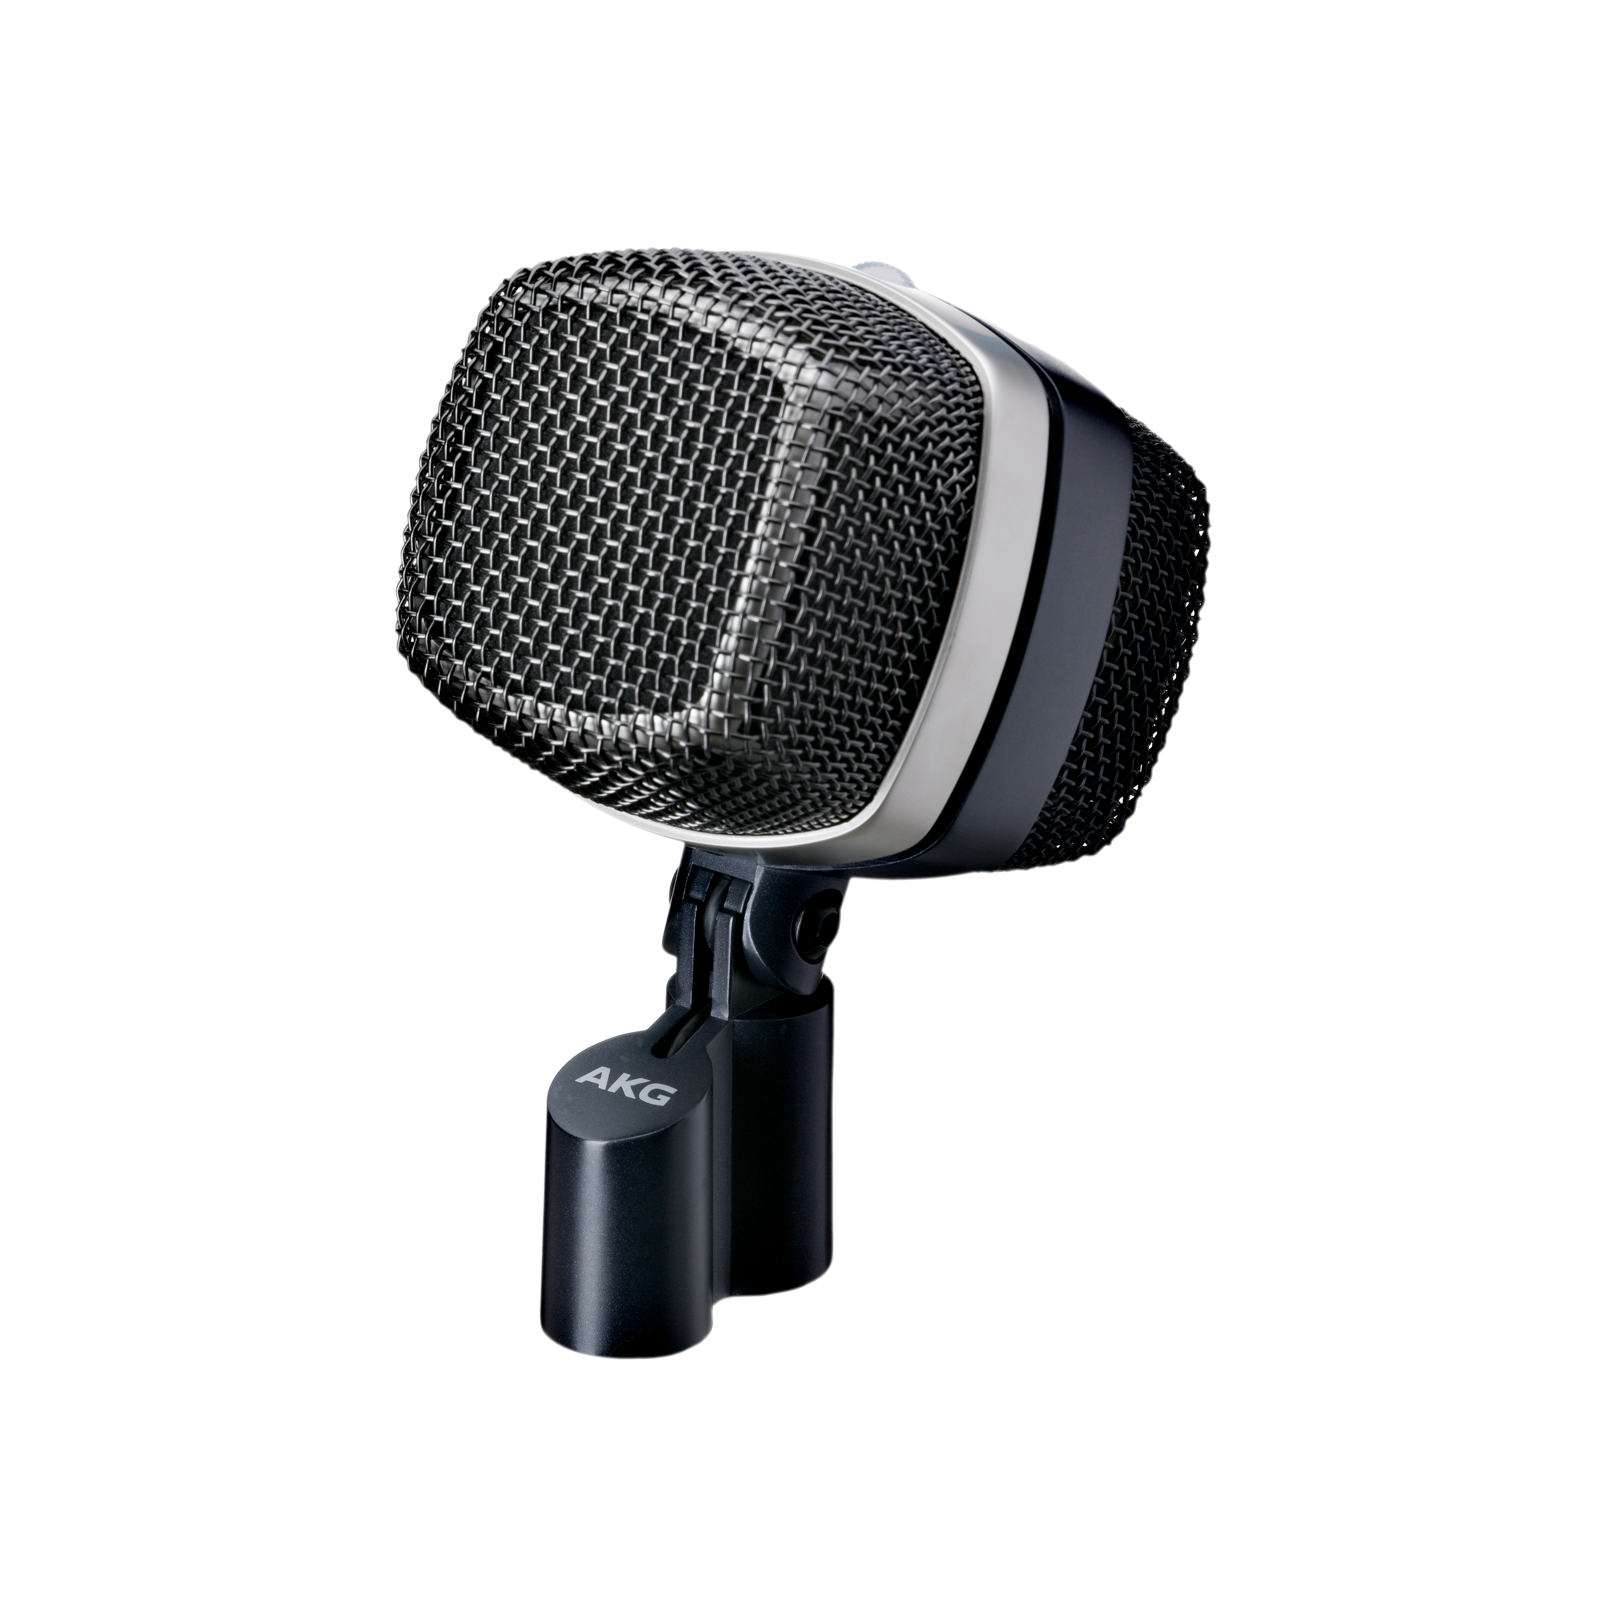 D12 VR - Black - Reference large-diaphragm dynamic microphone - Hero